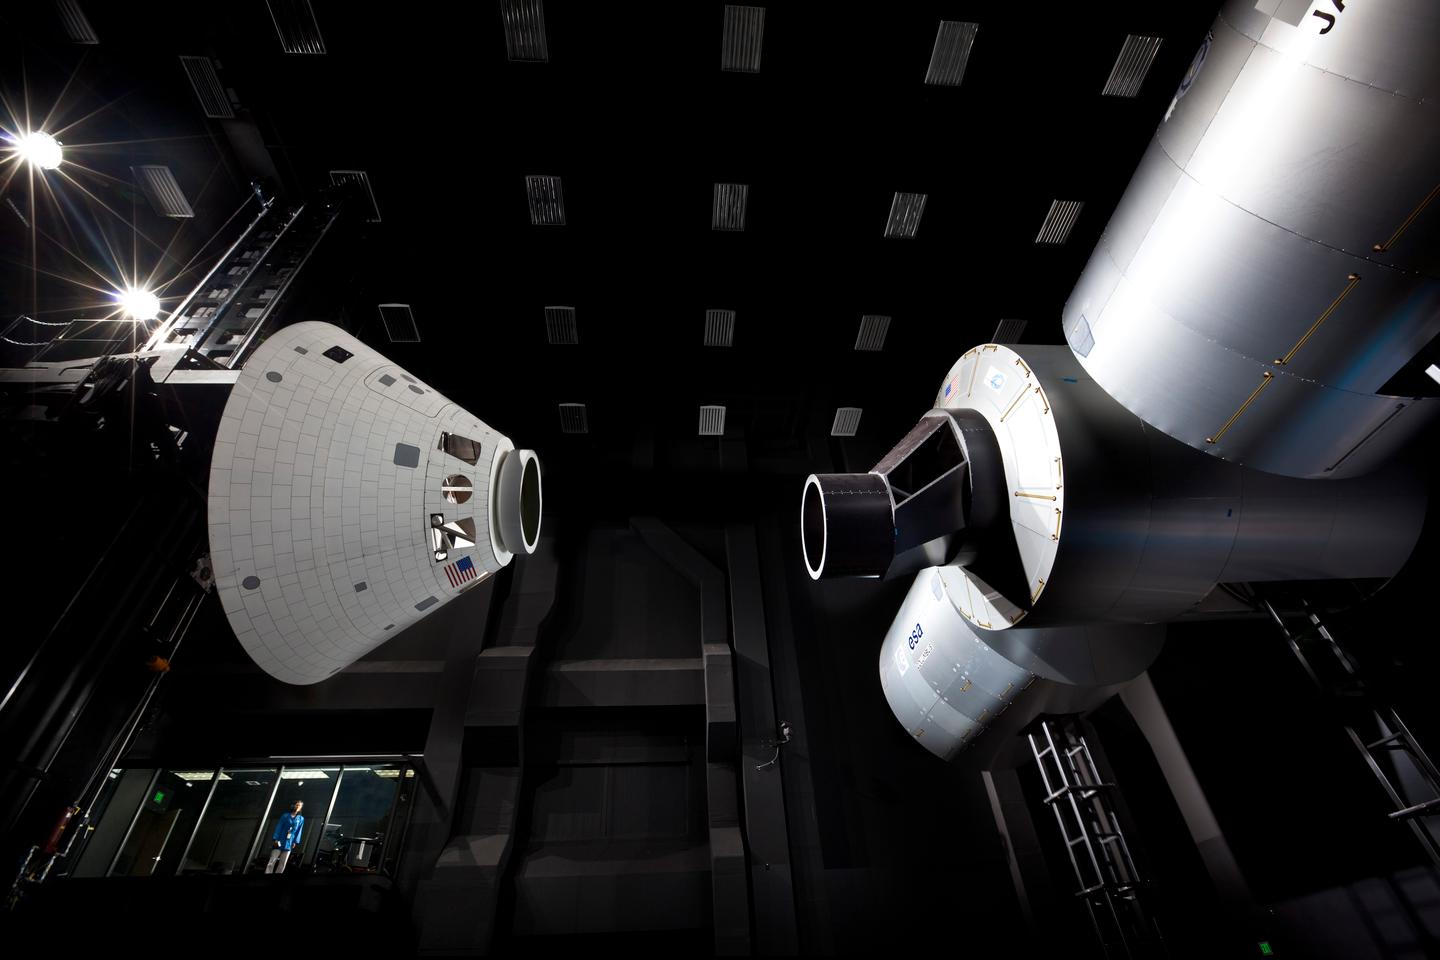 Lockheed Martin's Space Operations Simulation Center includes an 18,000 square-foot high bay area, here simulating on-orbit docking maneuvers with full-scale Orion and International Space Station mockups (Photo: NASA)